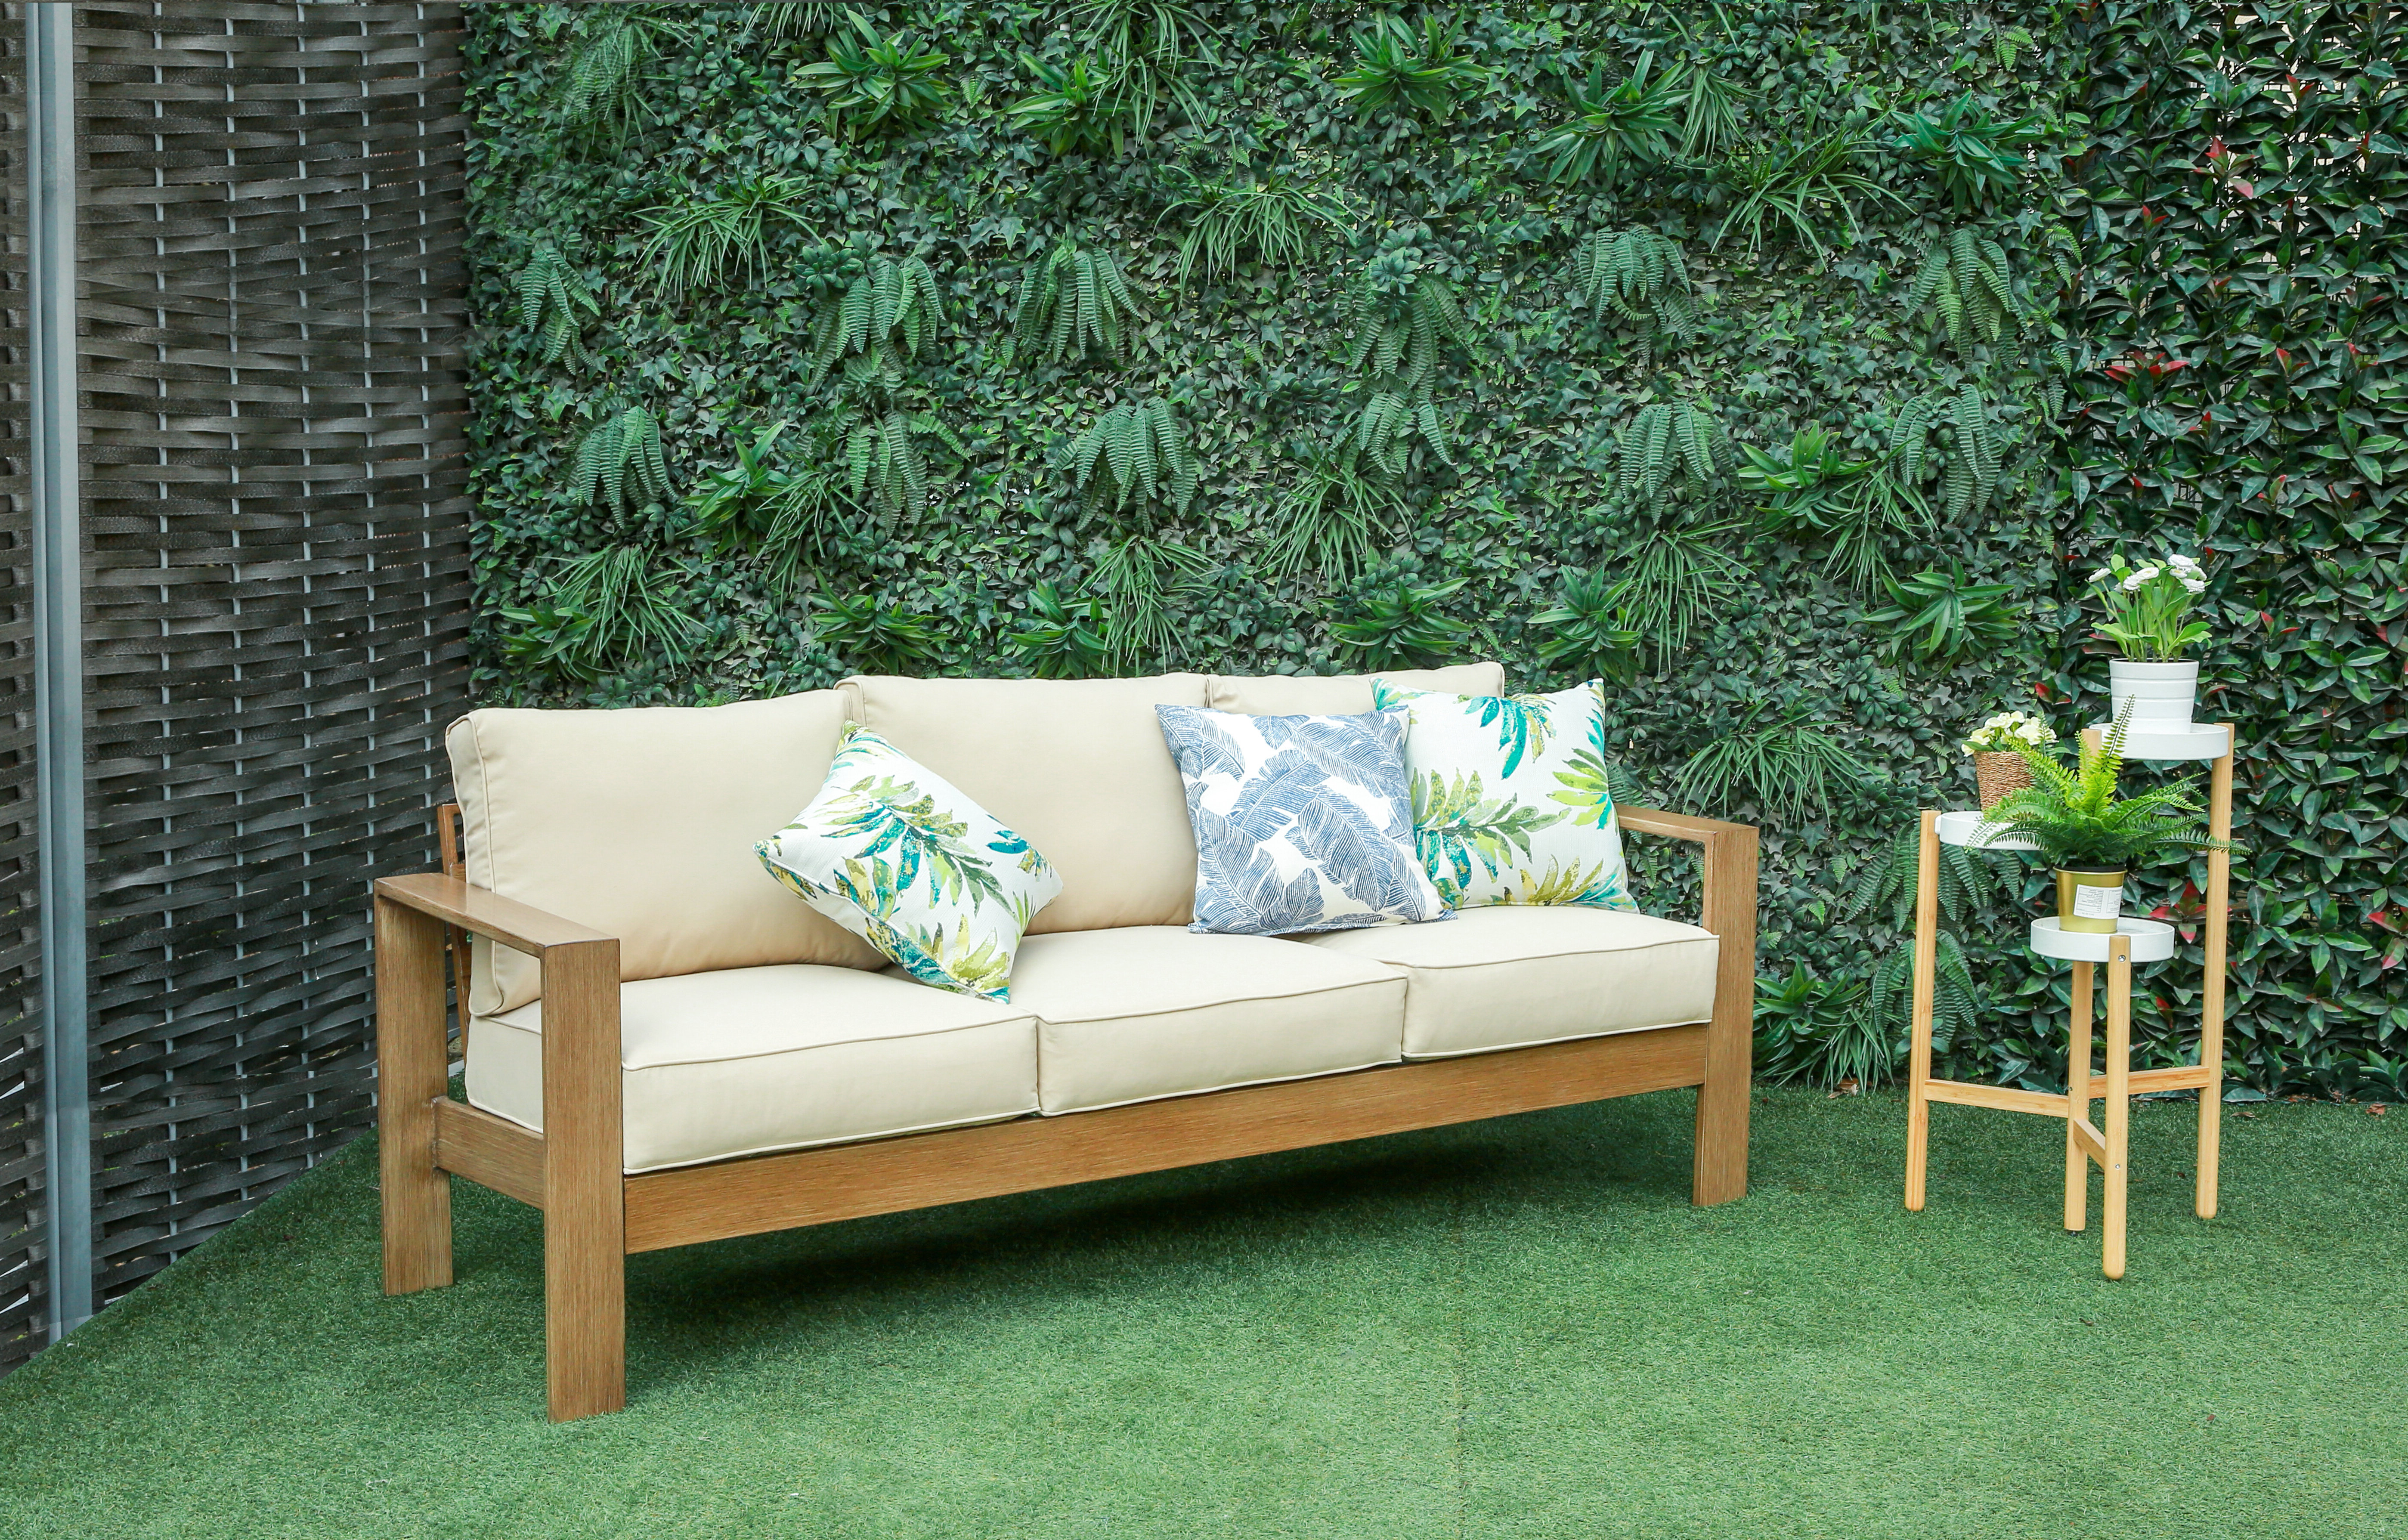 Yoselin Patio Sofas With Cushions Inside Most Popular Adamson Patio Sofa With Cushions (View 19 of 20)